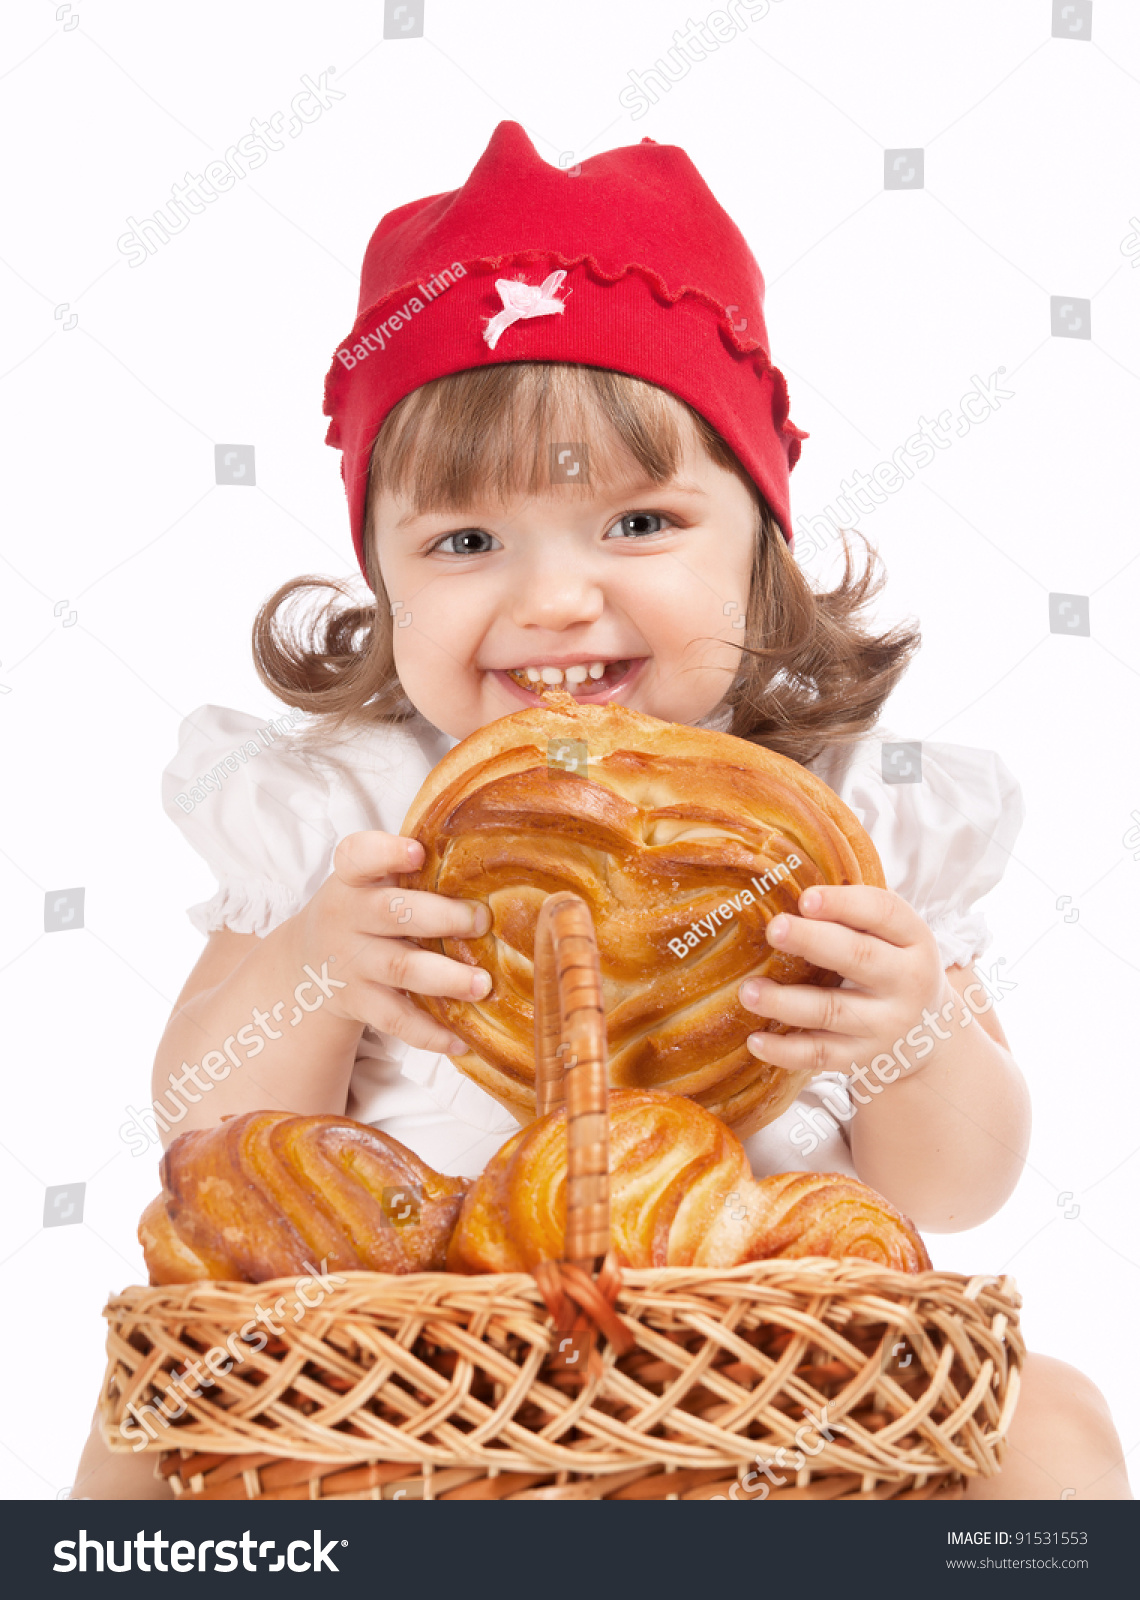 Beautiful Eat In Kitchens: Beautiful Little Baby Cap Eating Loaf Stock Photo 91531553